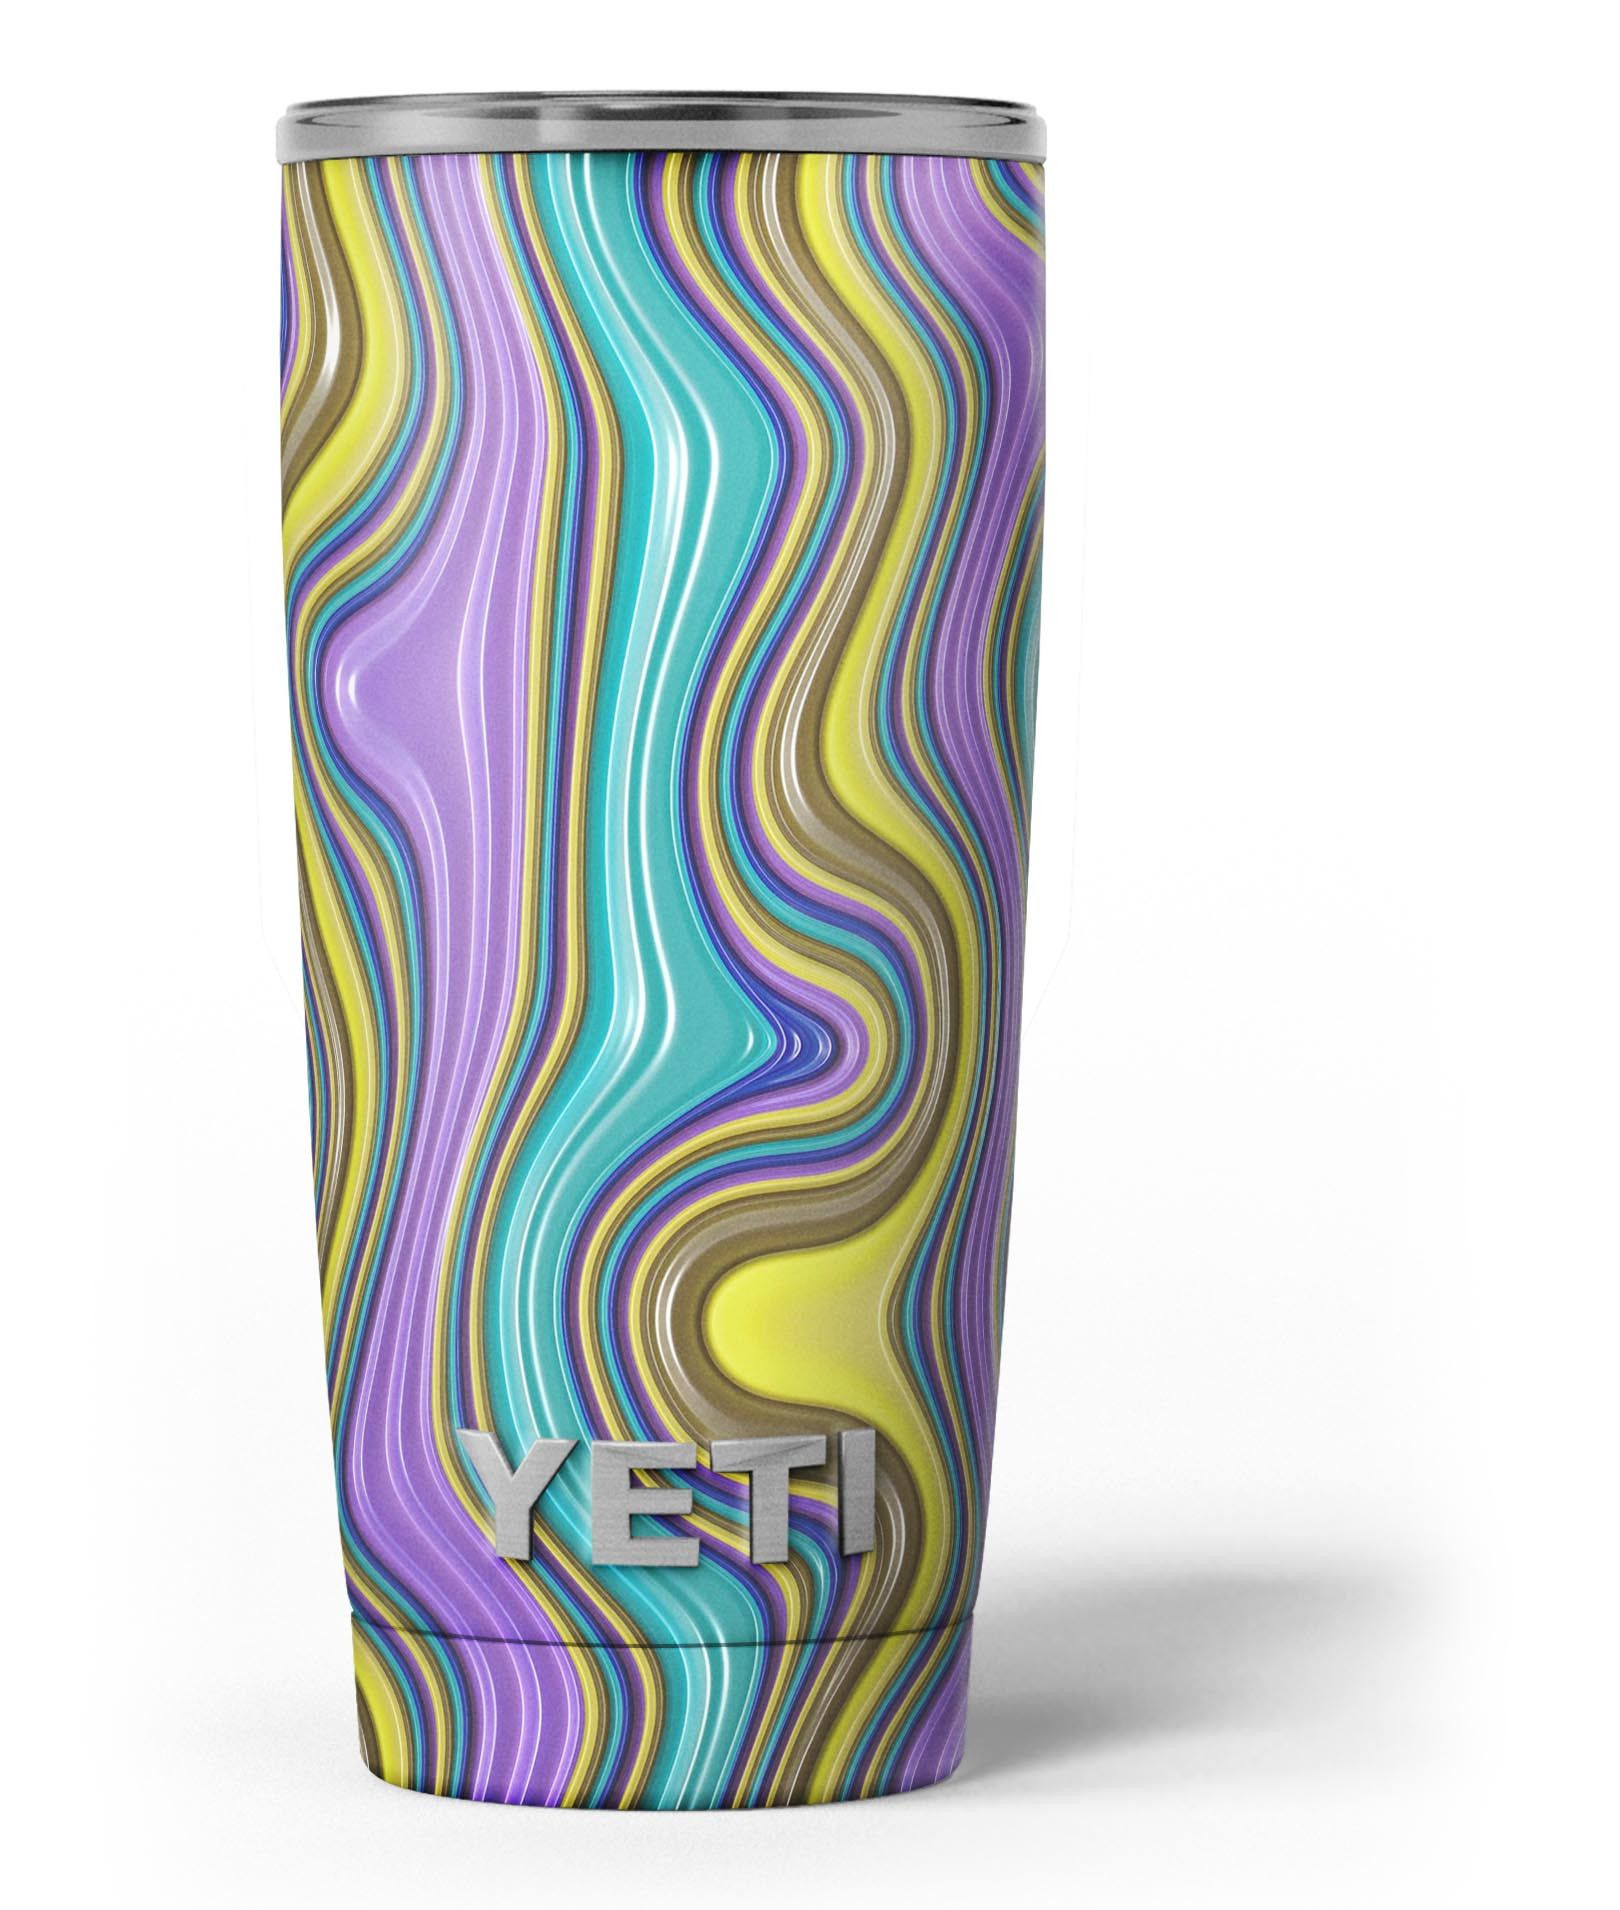 Bright purple teal and mustard yellow color waves skin